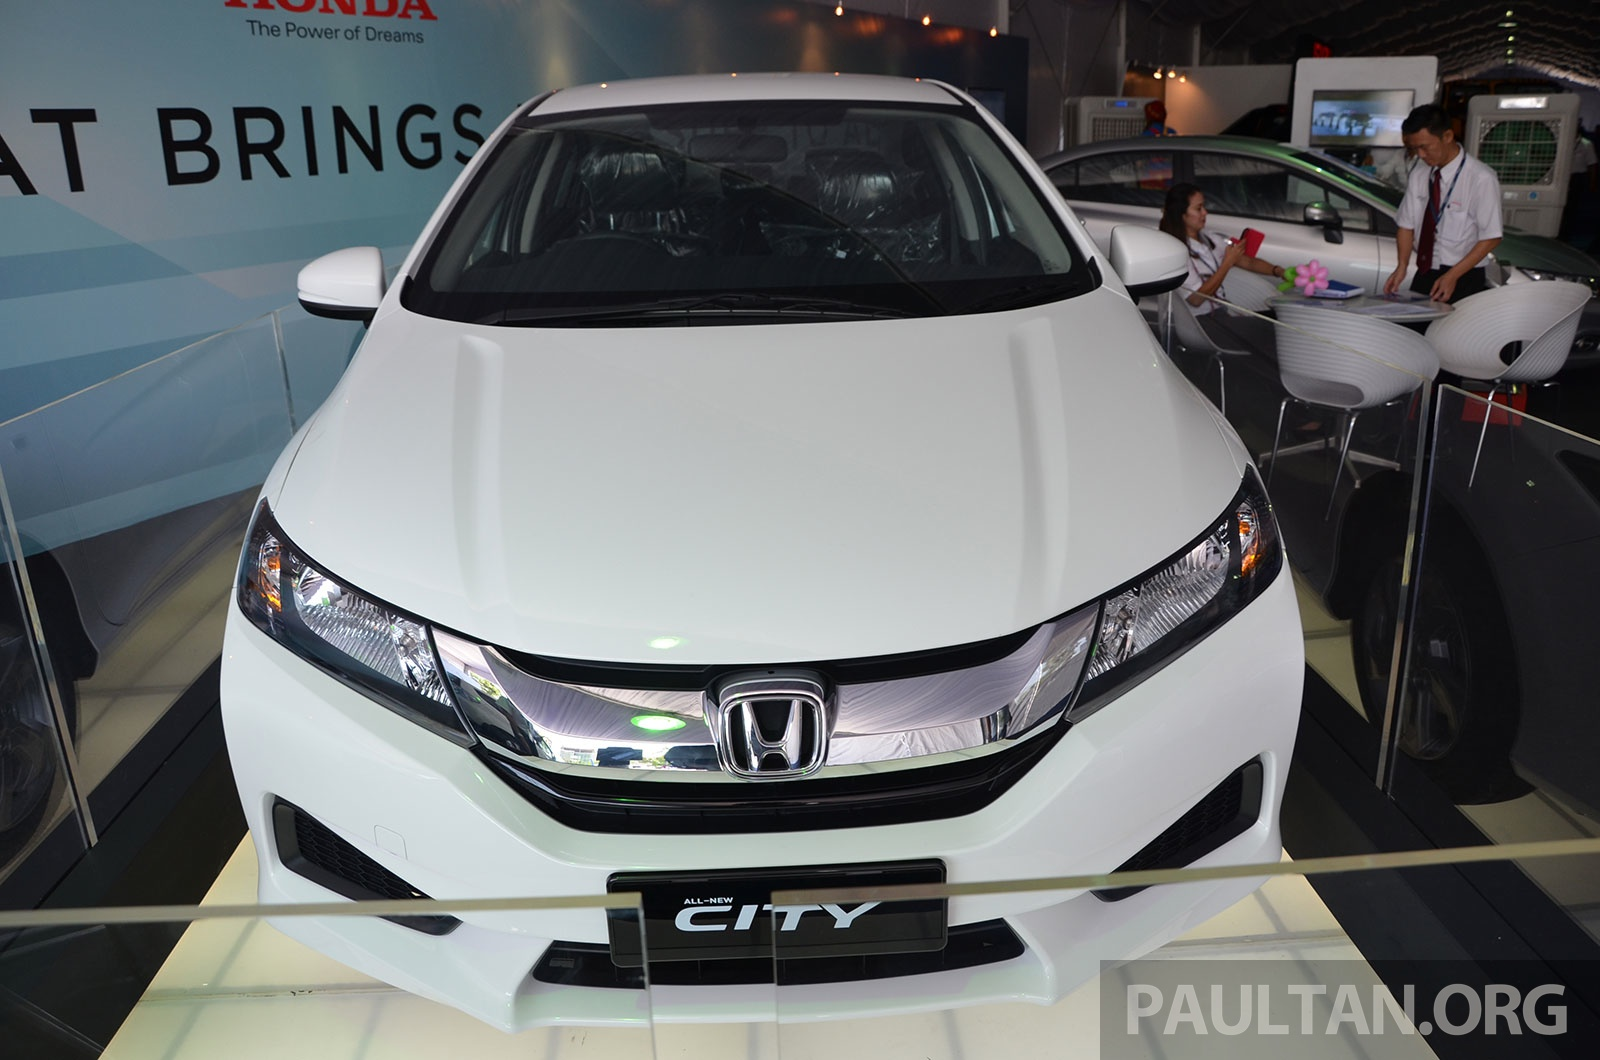 2014 Honda City White Grade S Car At DRB Autofest Image 231257